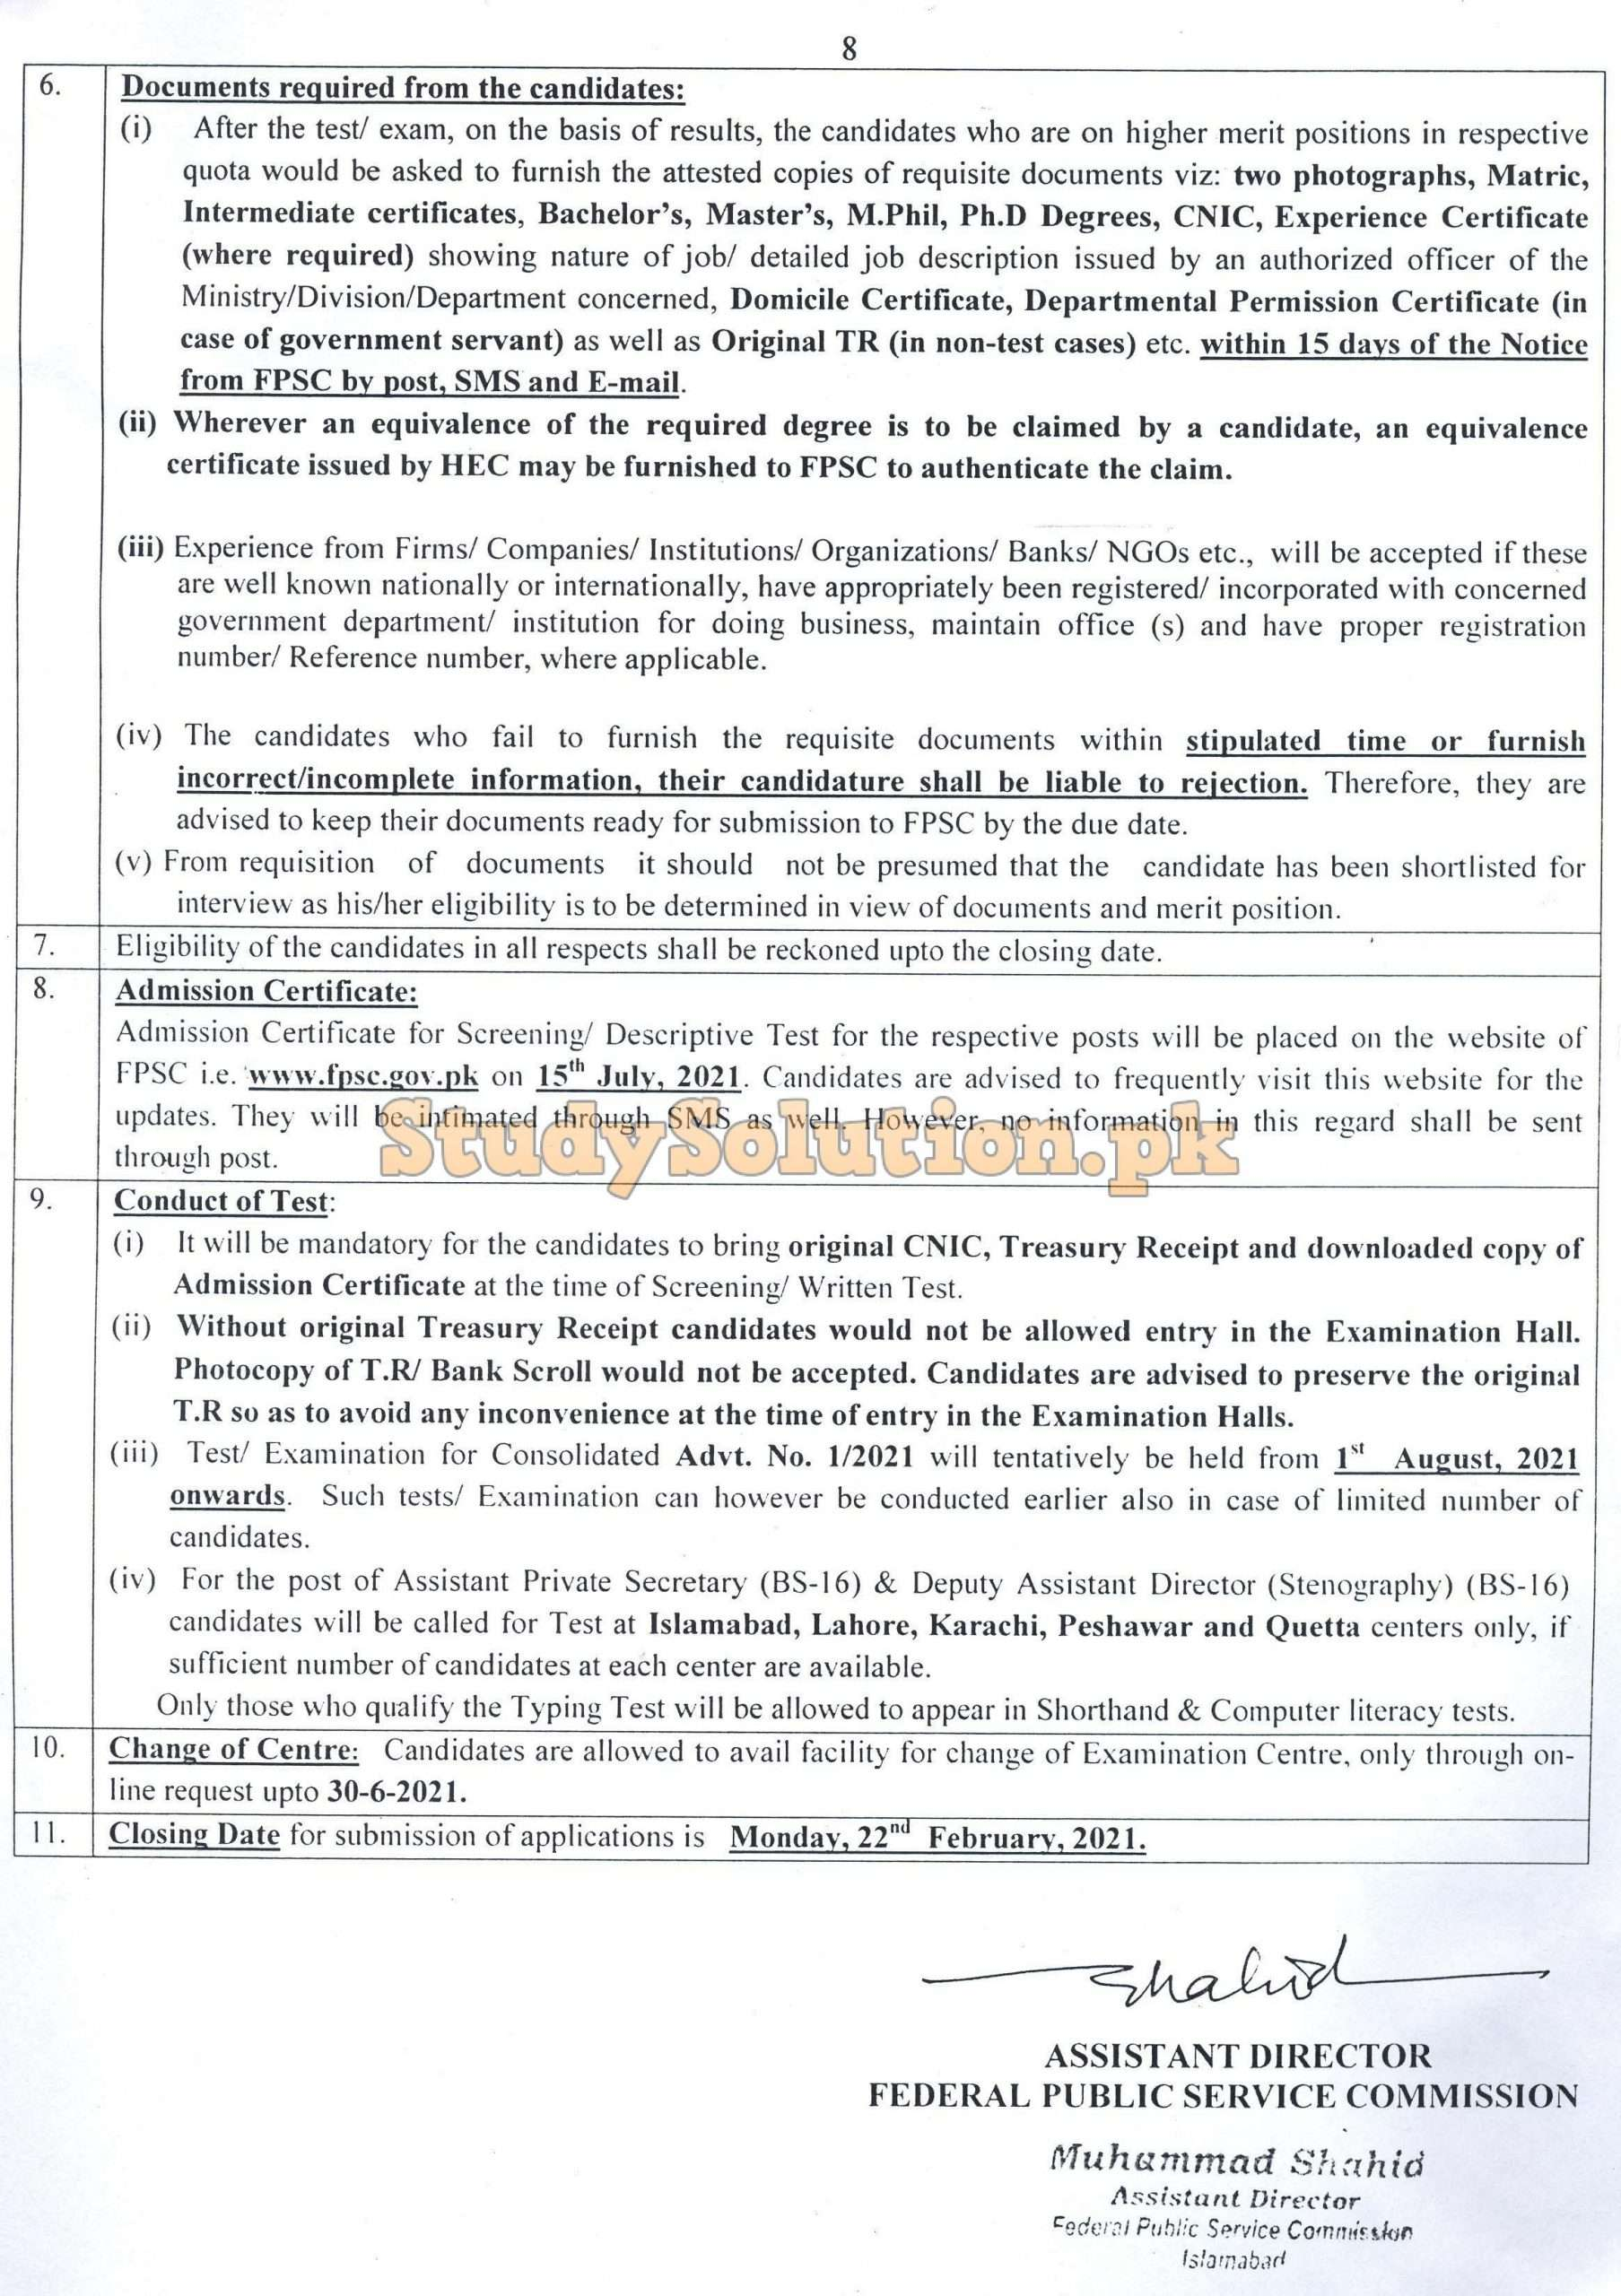 FPSC Federal Public Service Commission Latest Jobs Feb 2021 Advertisement No 01/2021